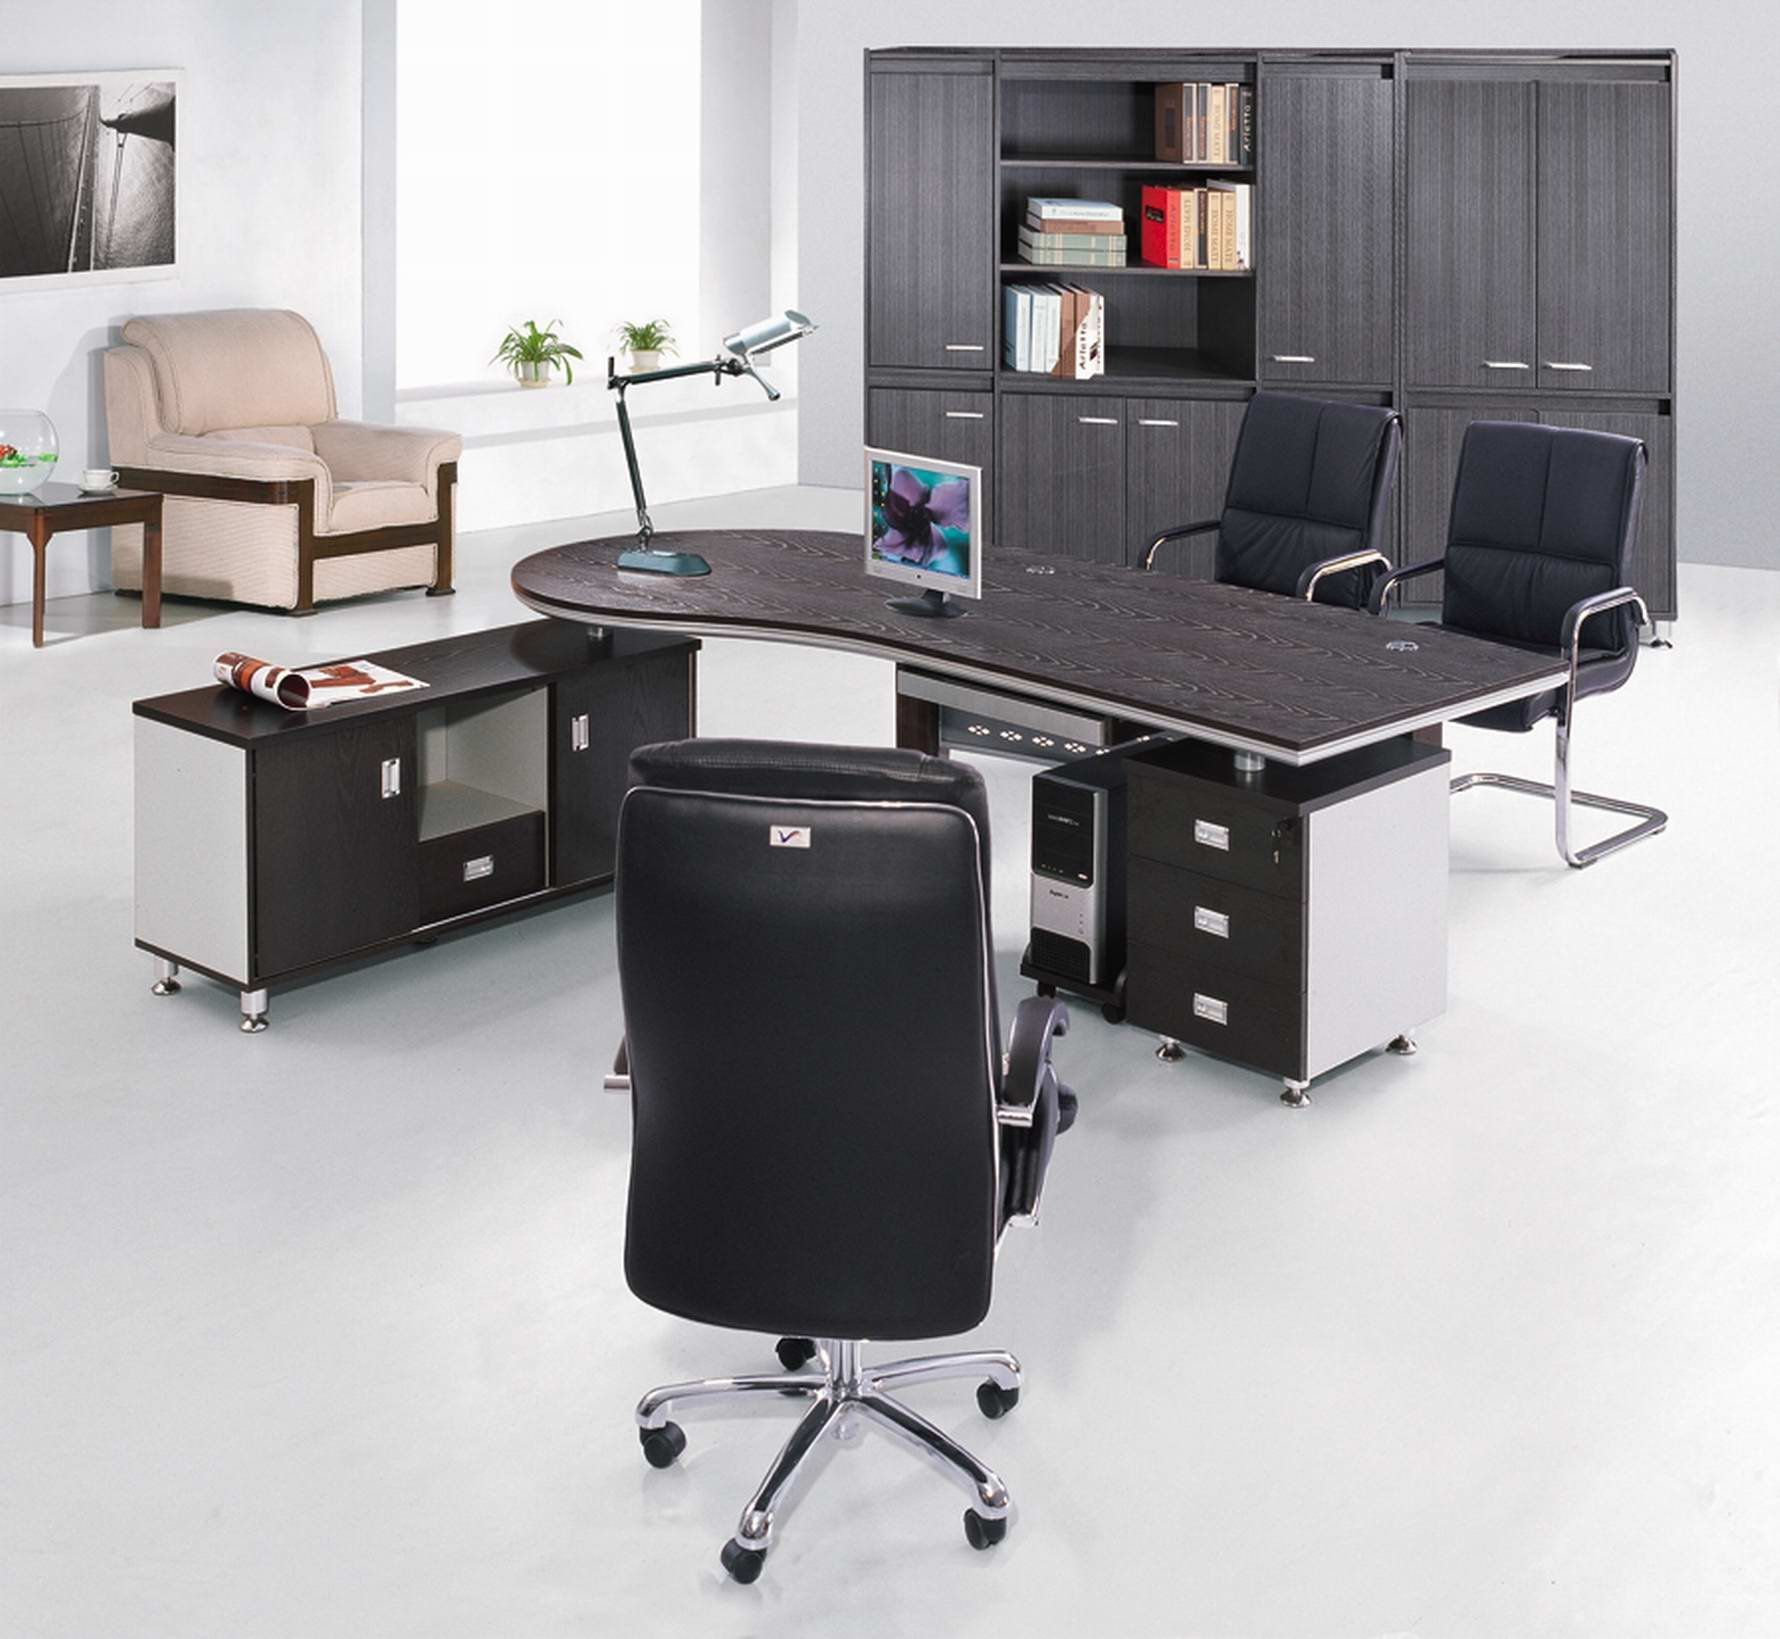 1000 images about office furniture on pinterest office furniture modern offices and modern office desk cheapest office desks